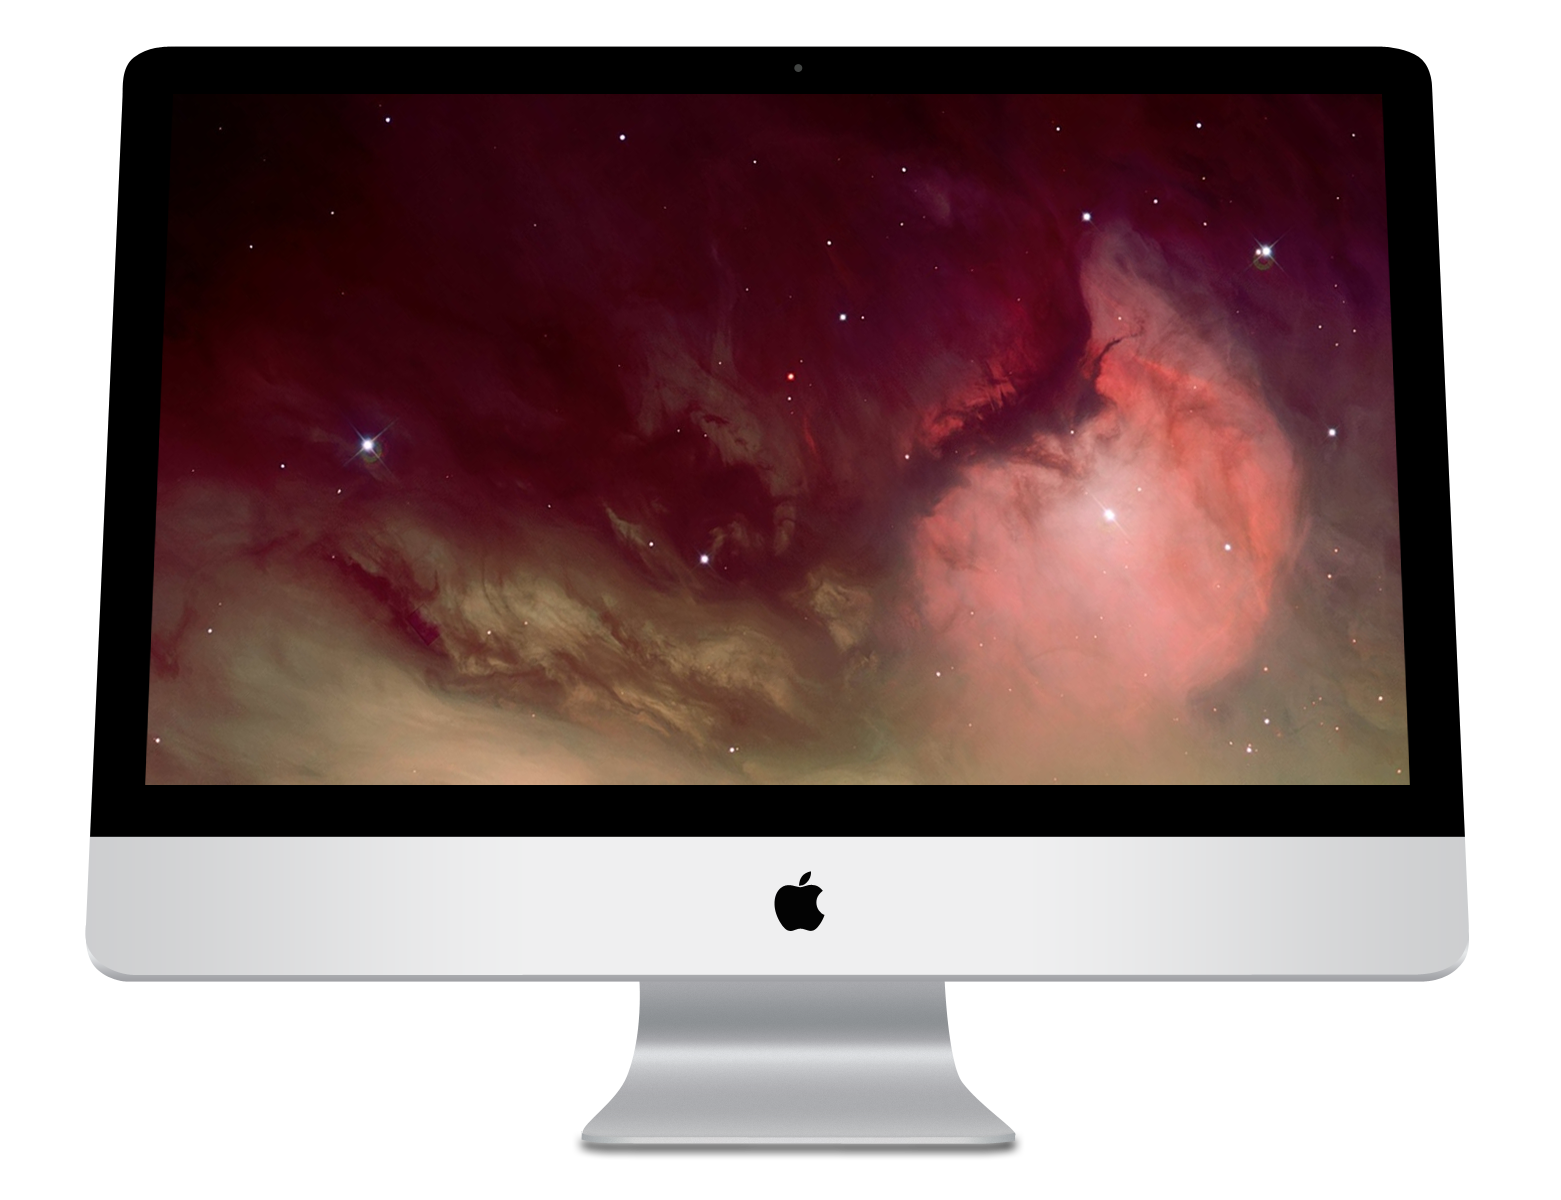 upgrade imac late 2009 cpu